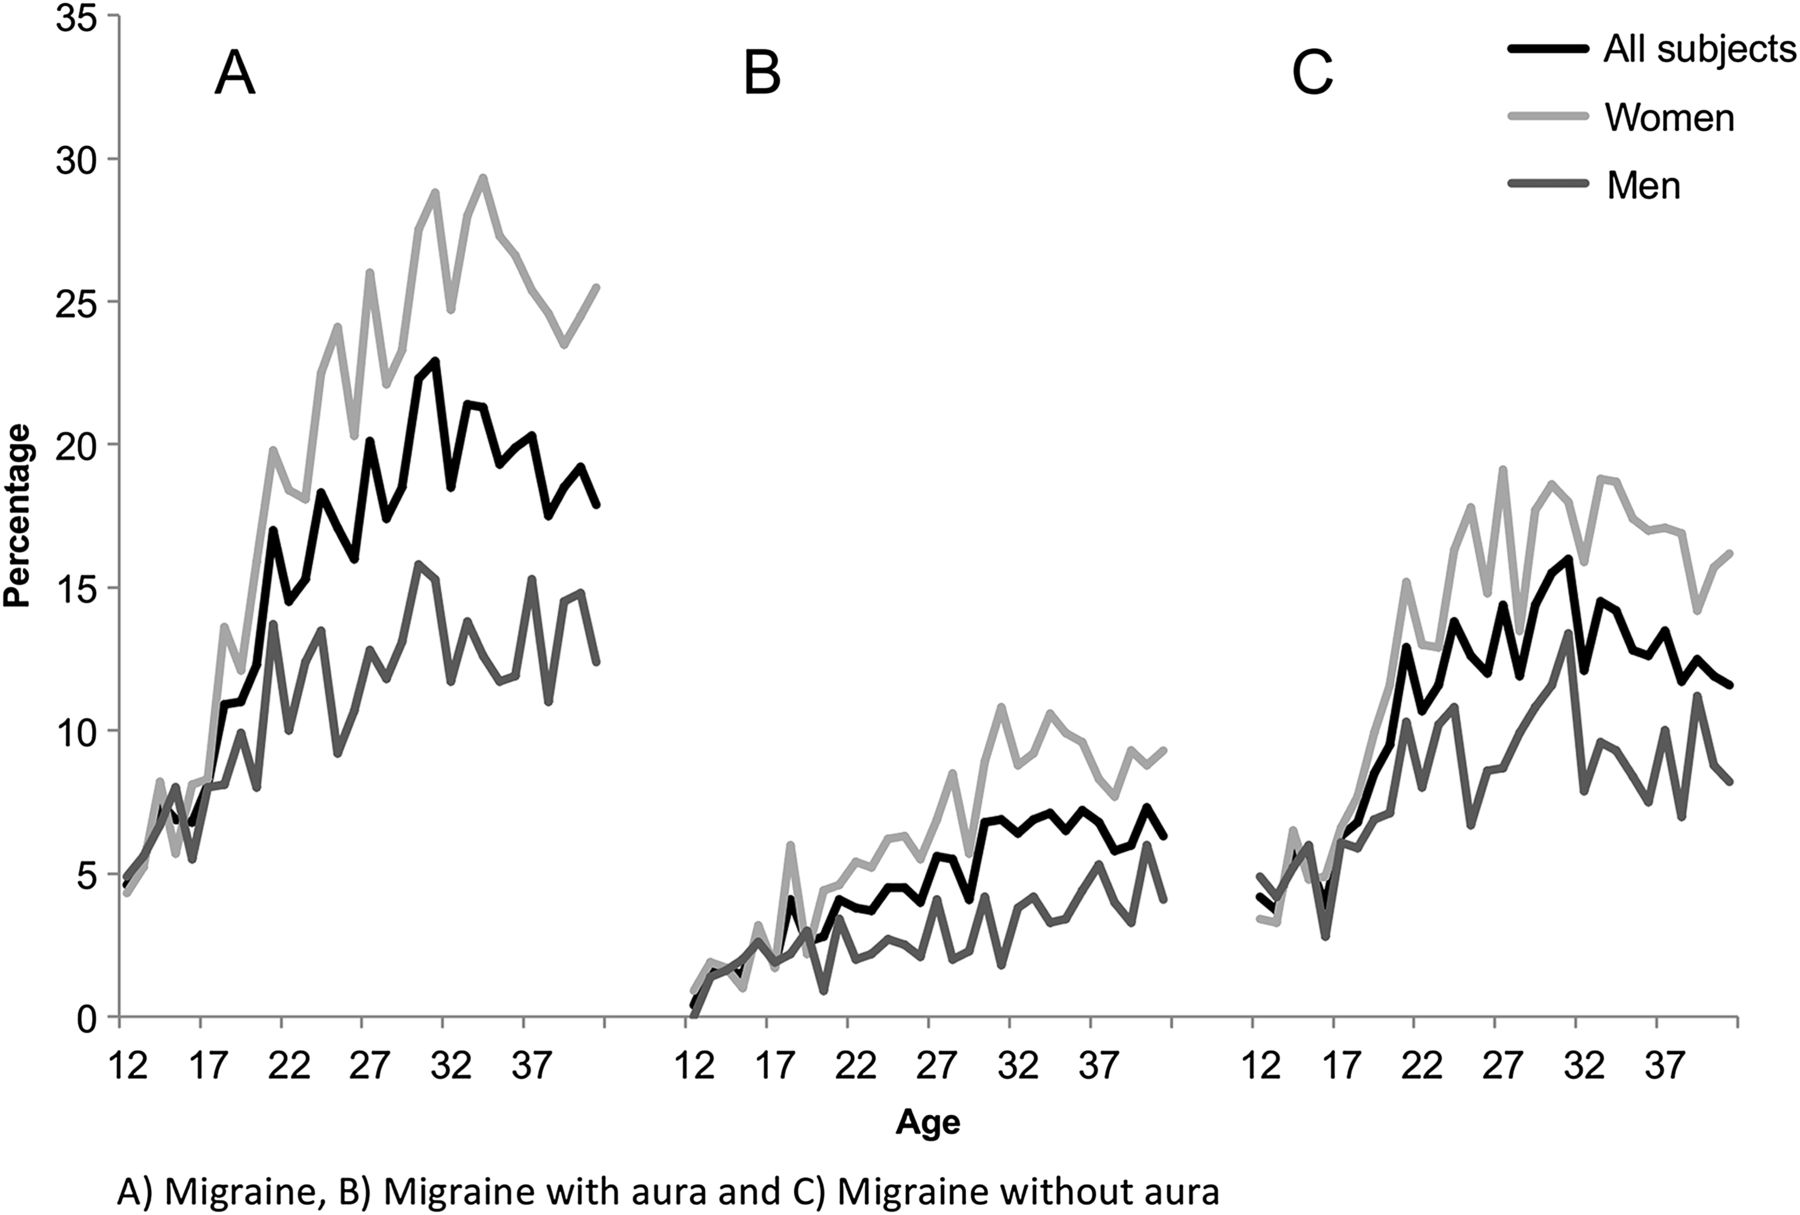 Sex-specific lifetime prevalence rates of migraine, migraine with aura (MA) ...